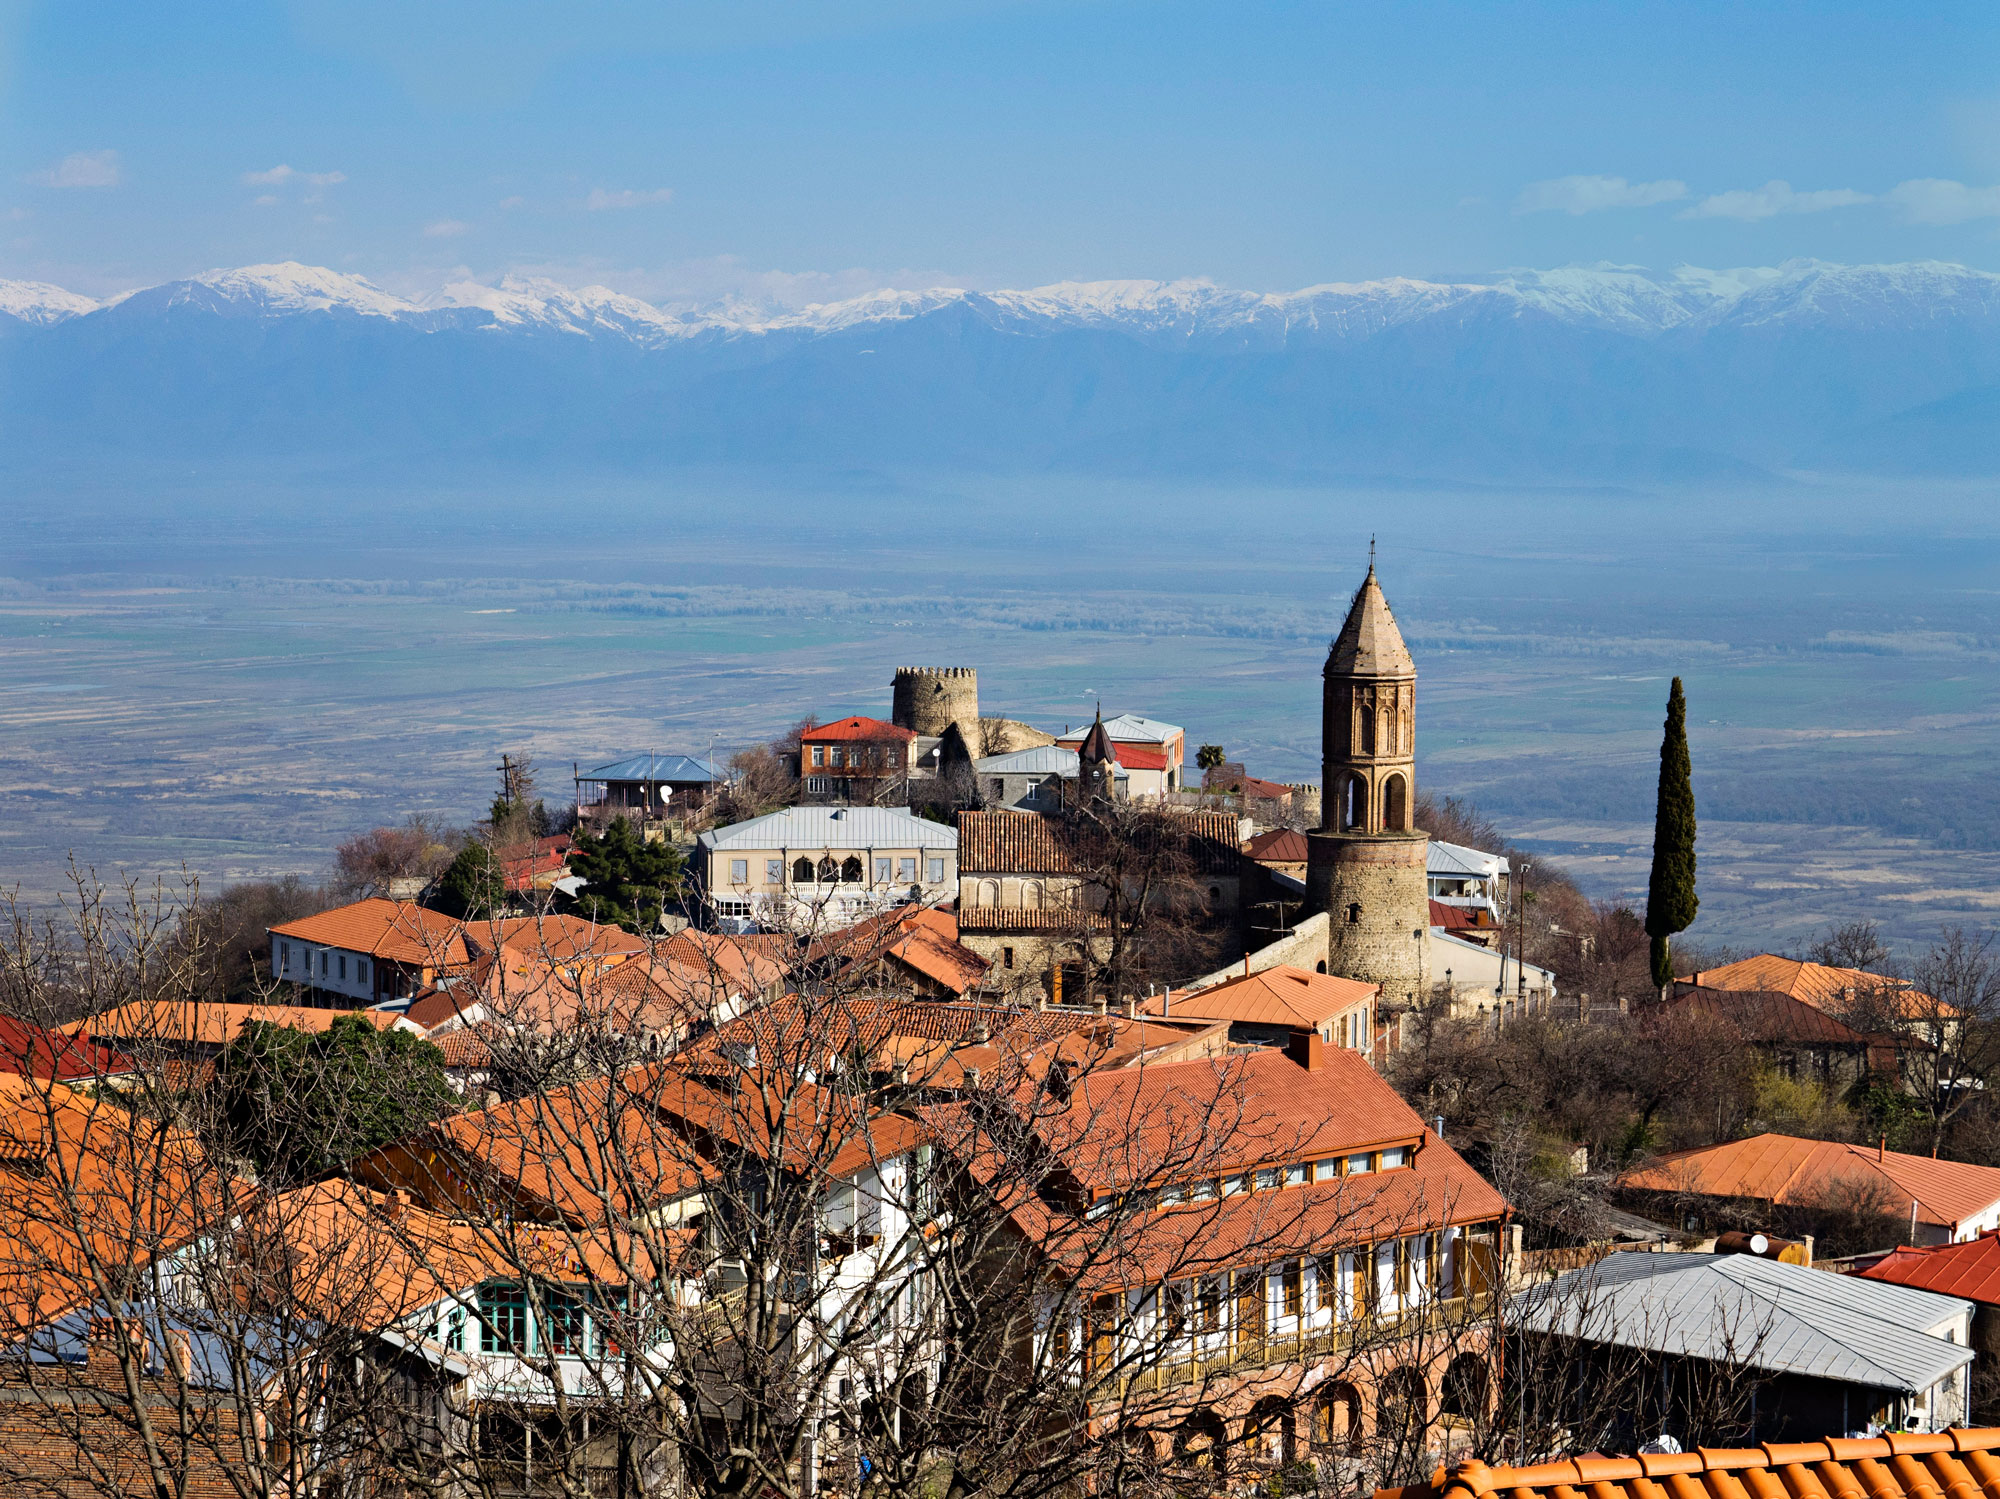 the Kakheti valley, under the peaks of the towering Caucasus Mountains